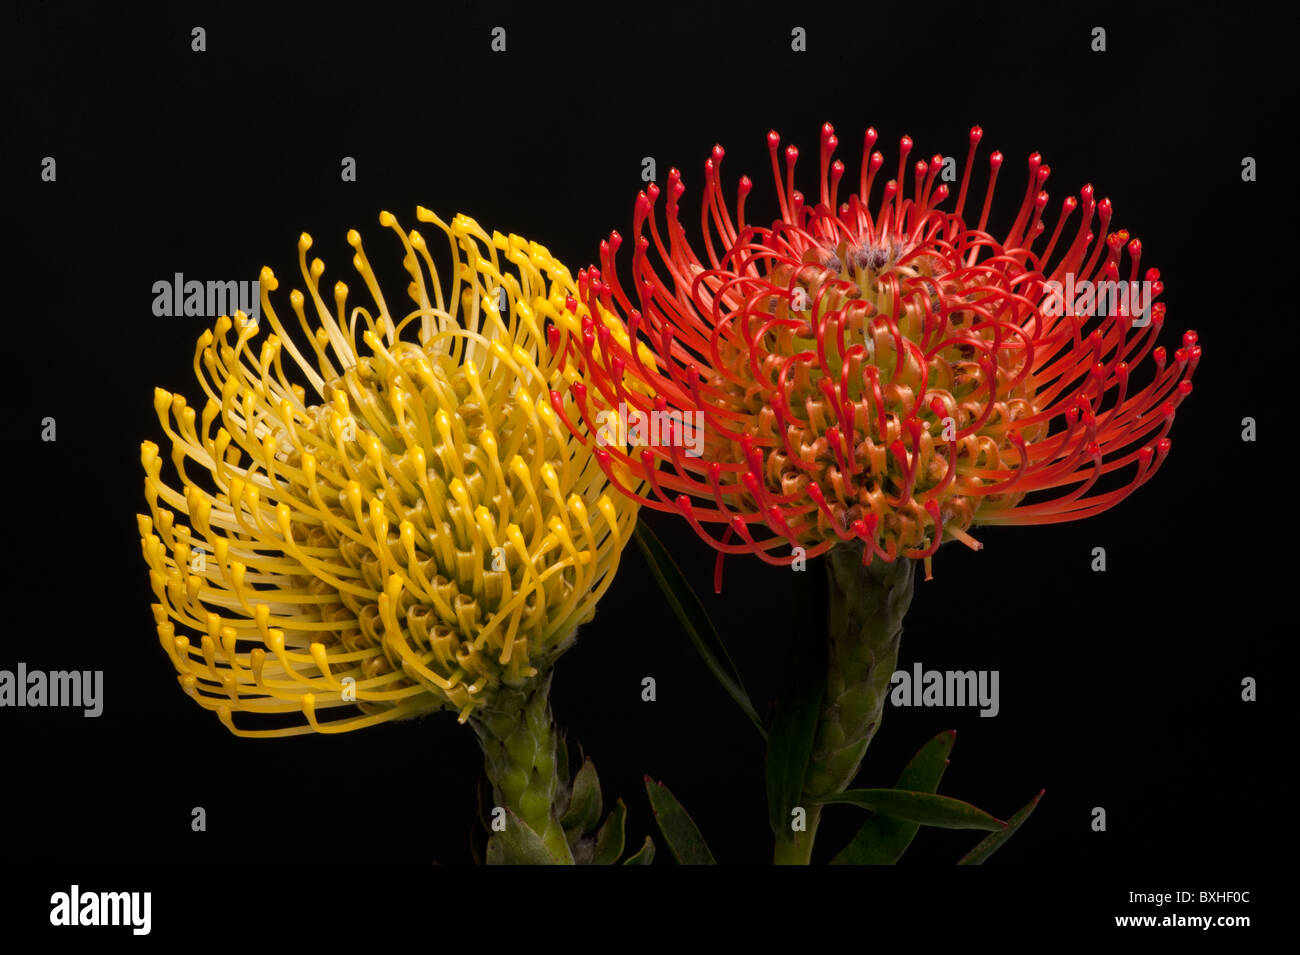 Red And Yellow Pincushion Protea Flower On A Horizontal Black Stock